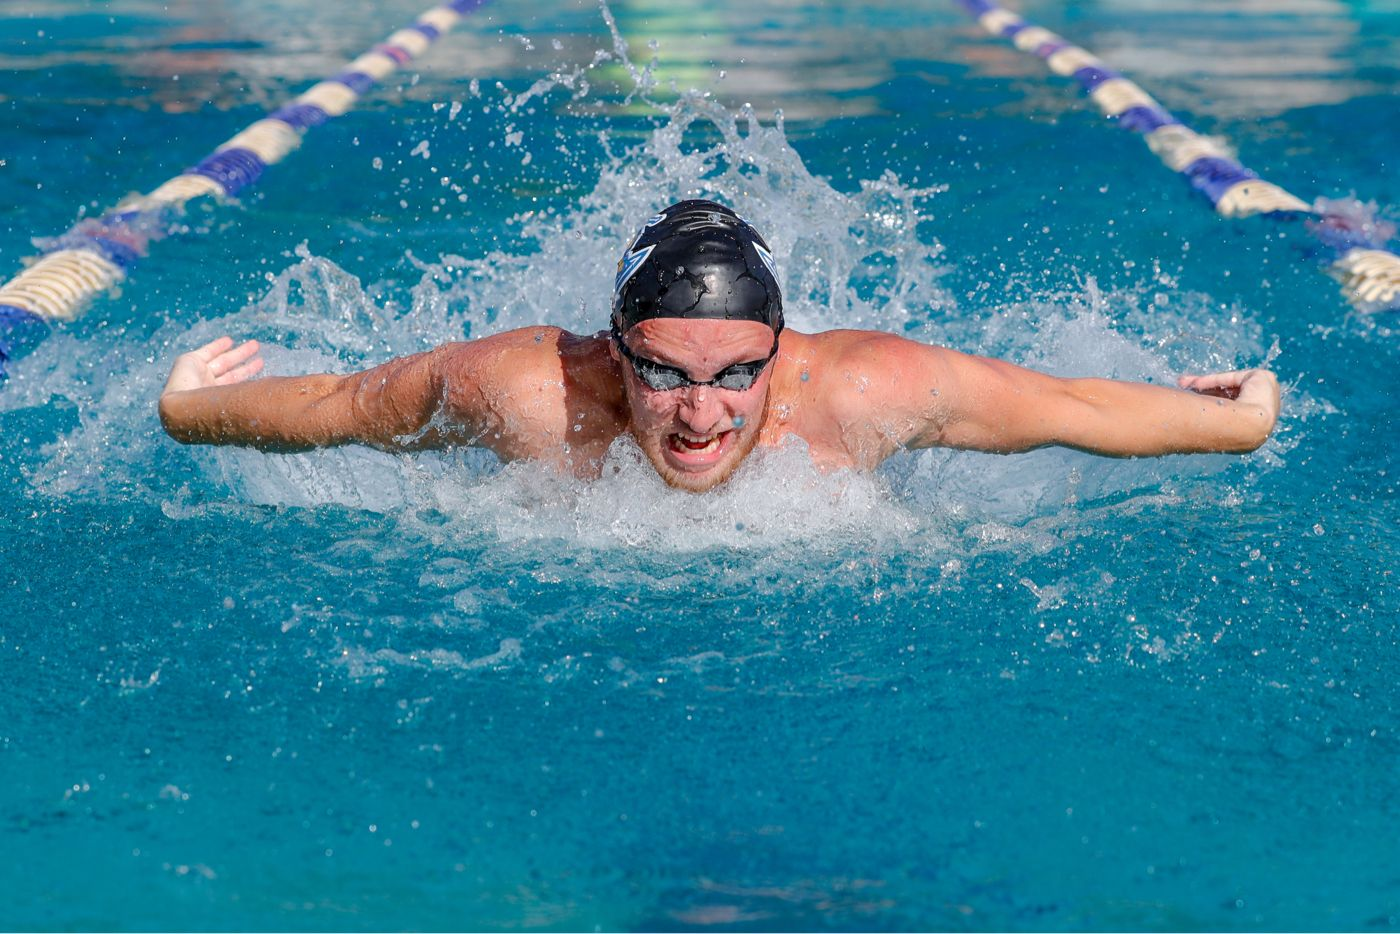 An athlete swimming in the pool competitively during a swim meet.